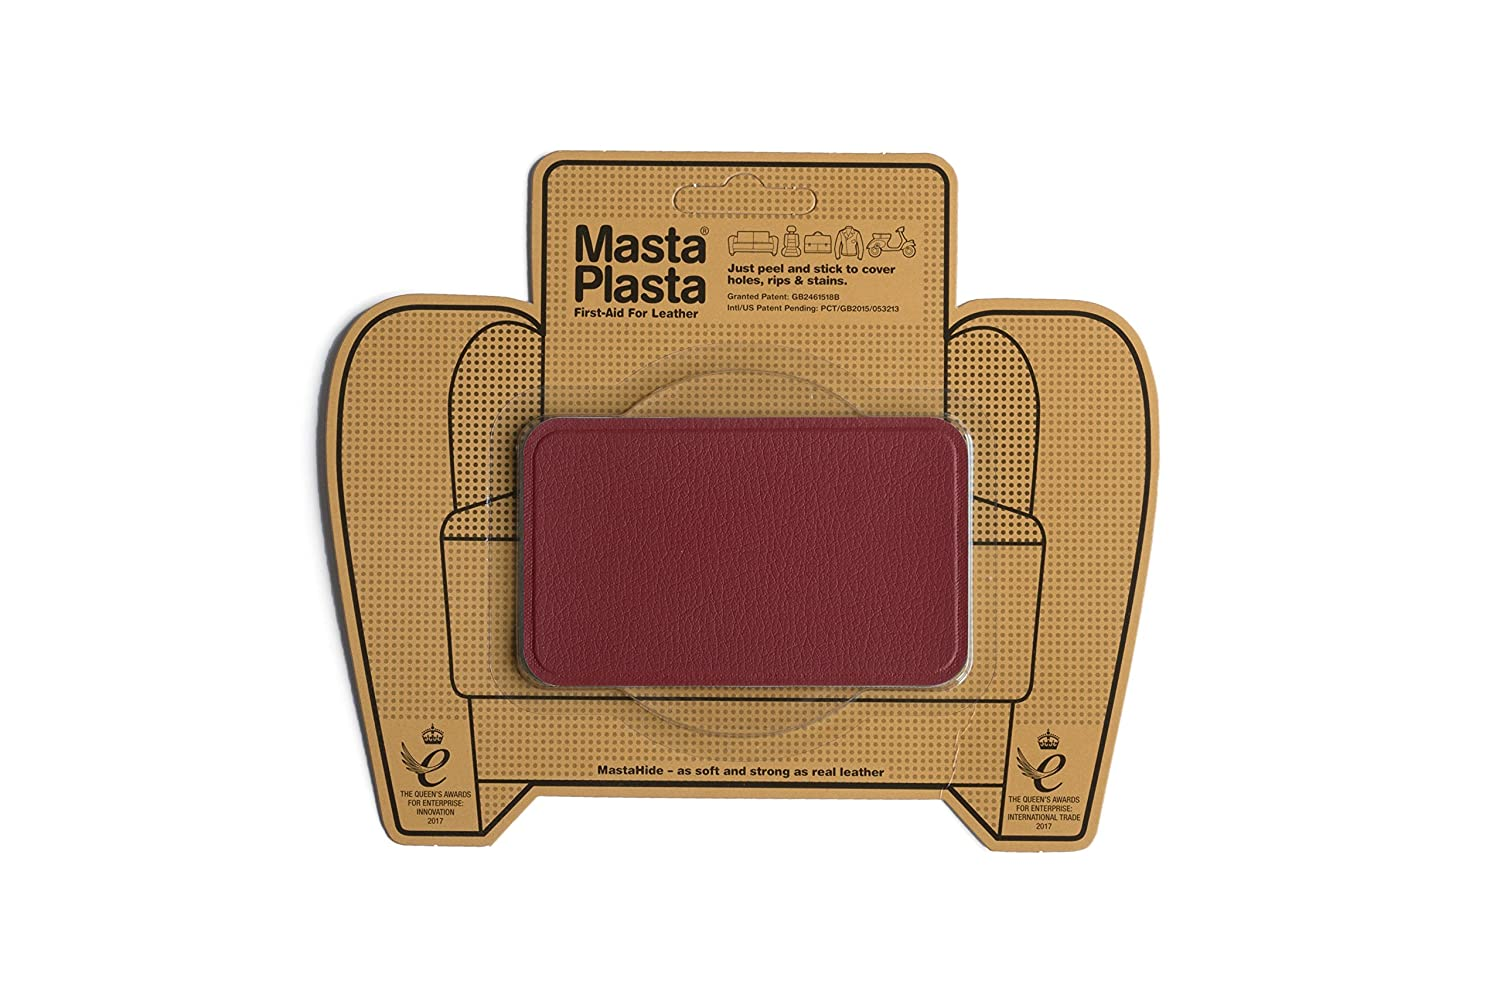 MastaPlasta Self-Adhesive Patch for Leather and Vinyl Repair, Medium, Beige– Multiple Colors Available 4336847754